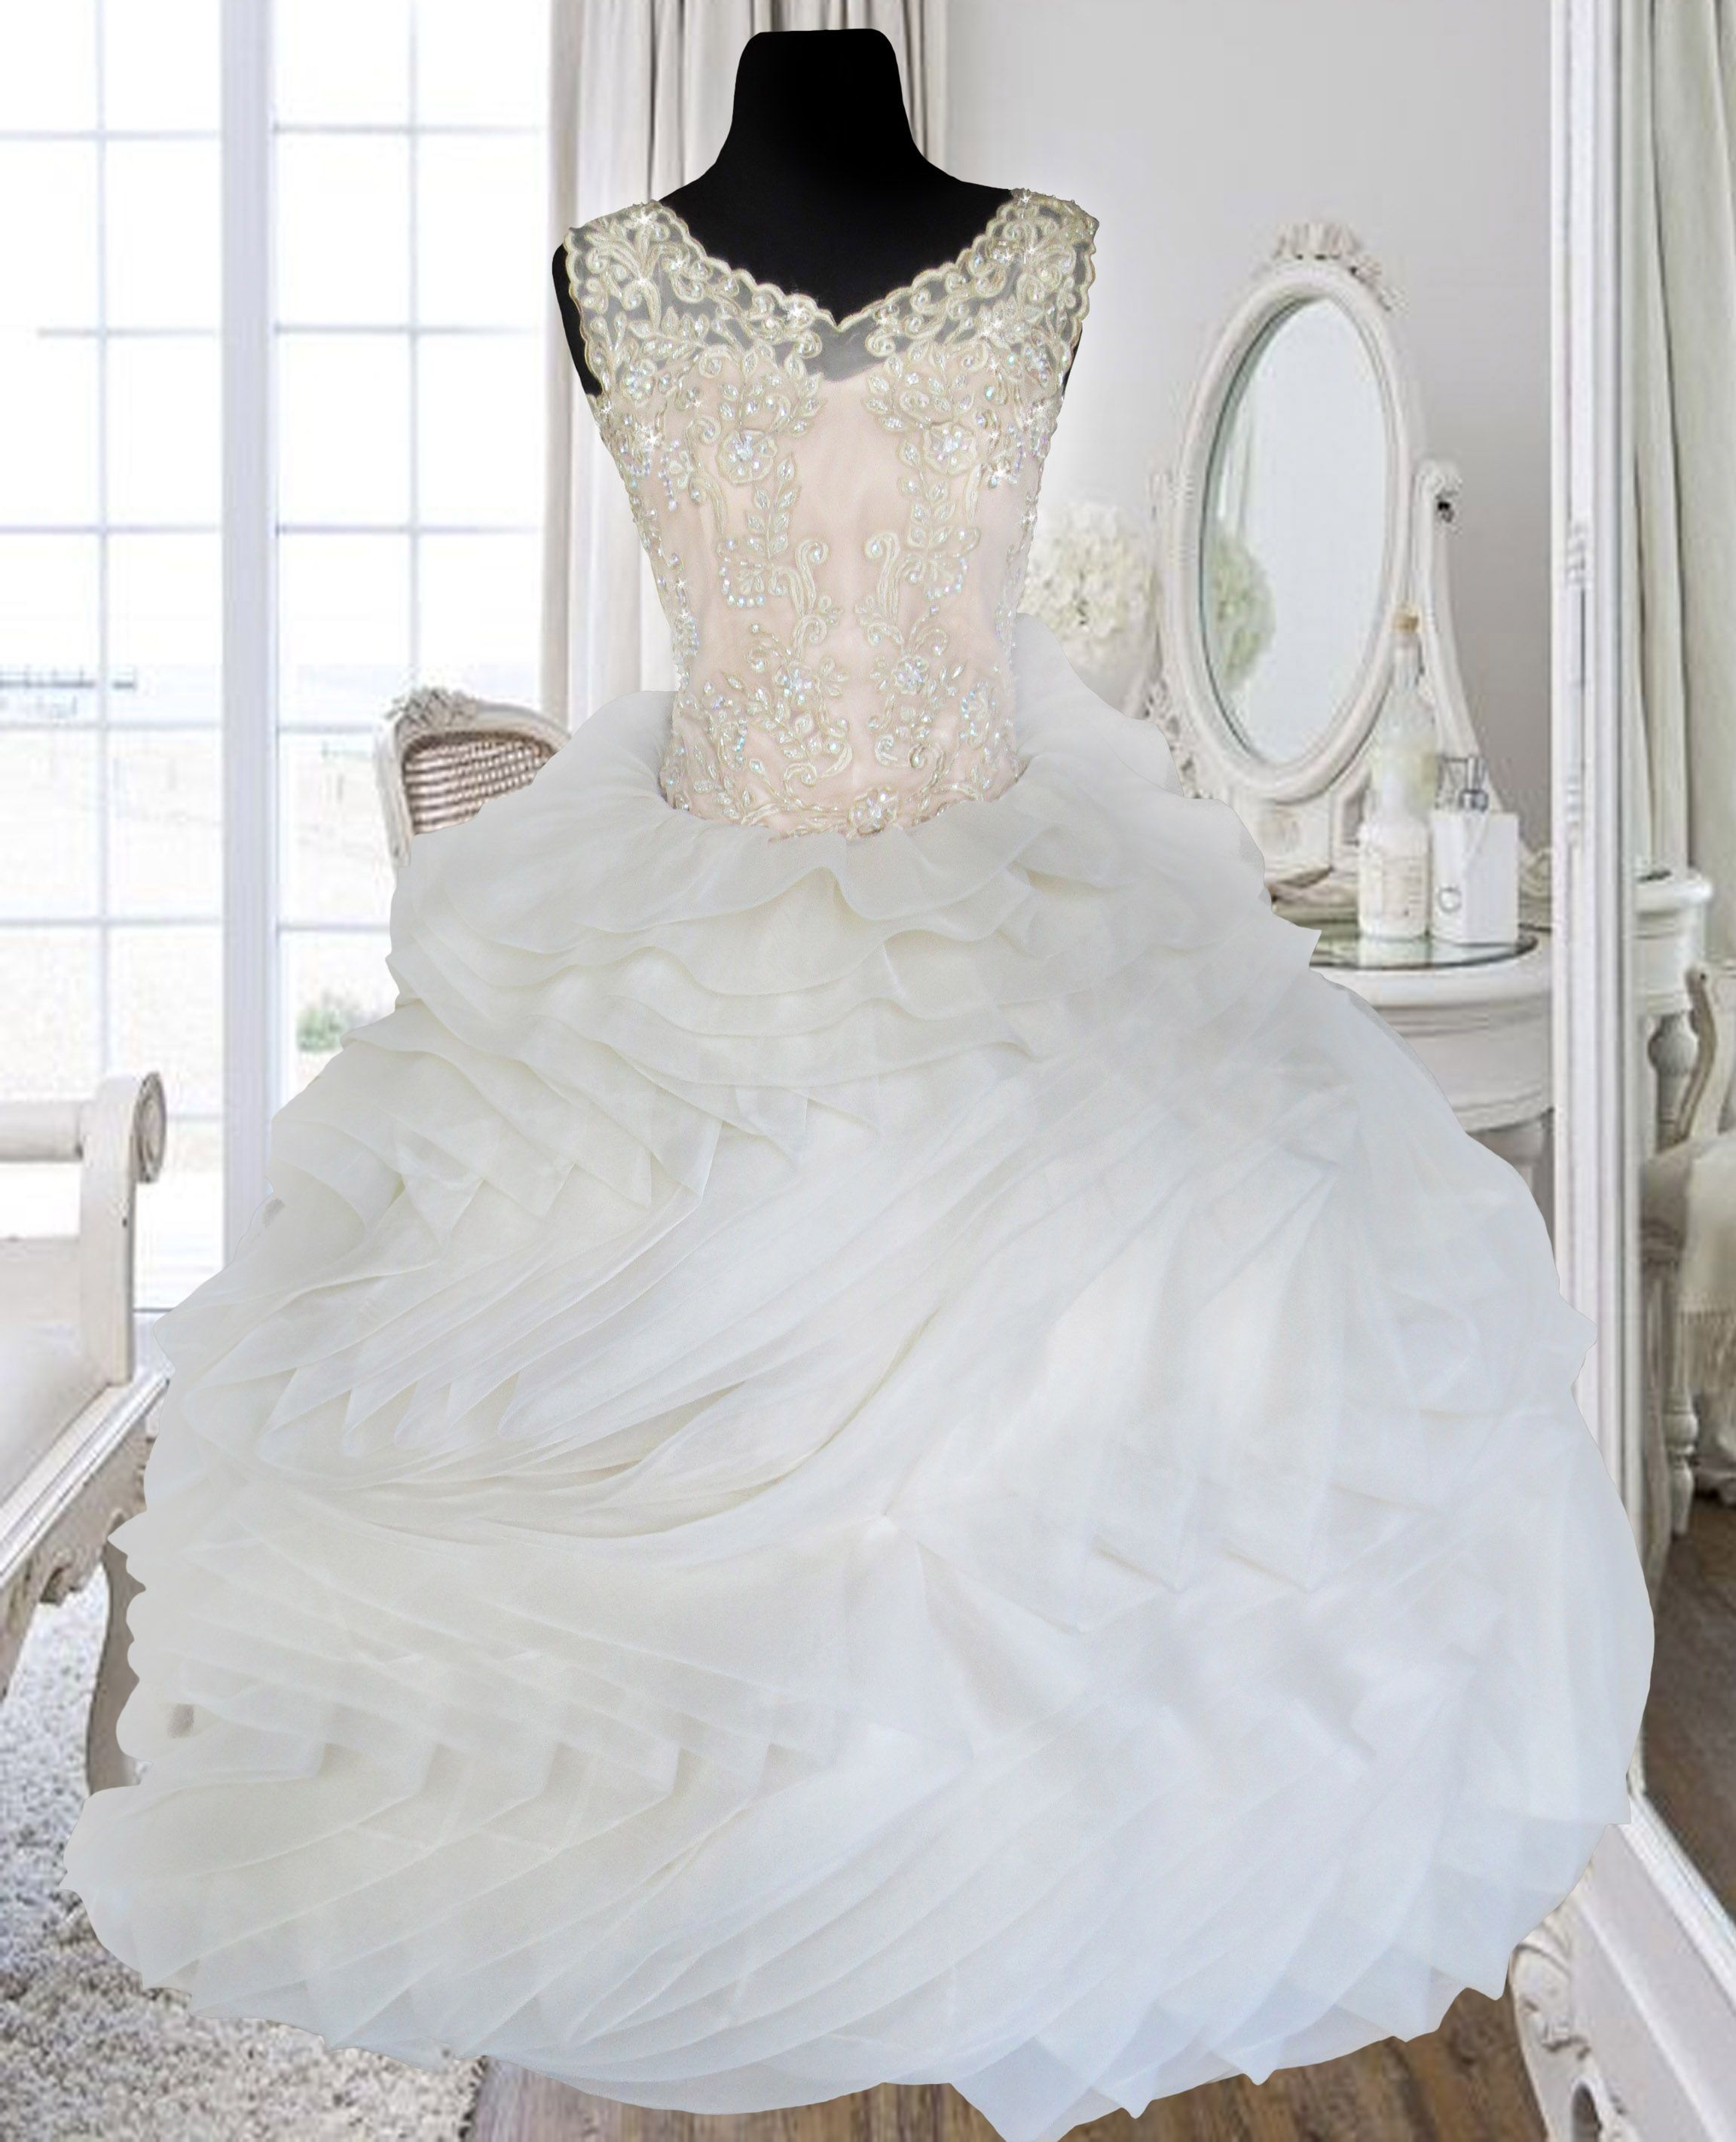 Wedding Gowns On Rent: Rent This Debut Ball Gown At Www.gownforent.com/ And Www